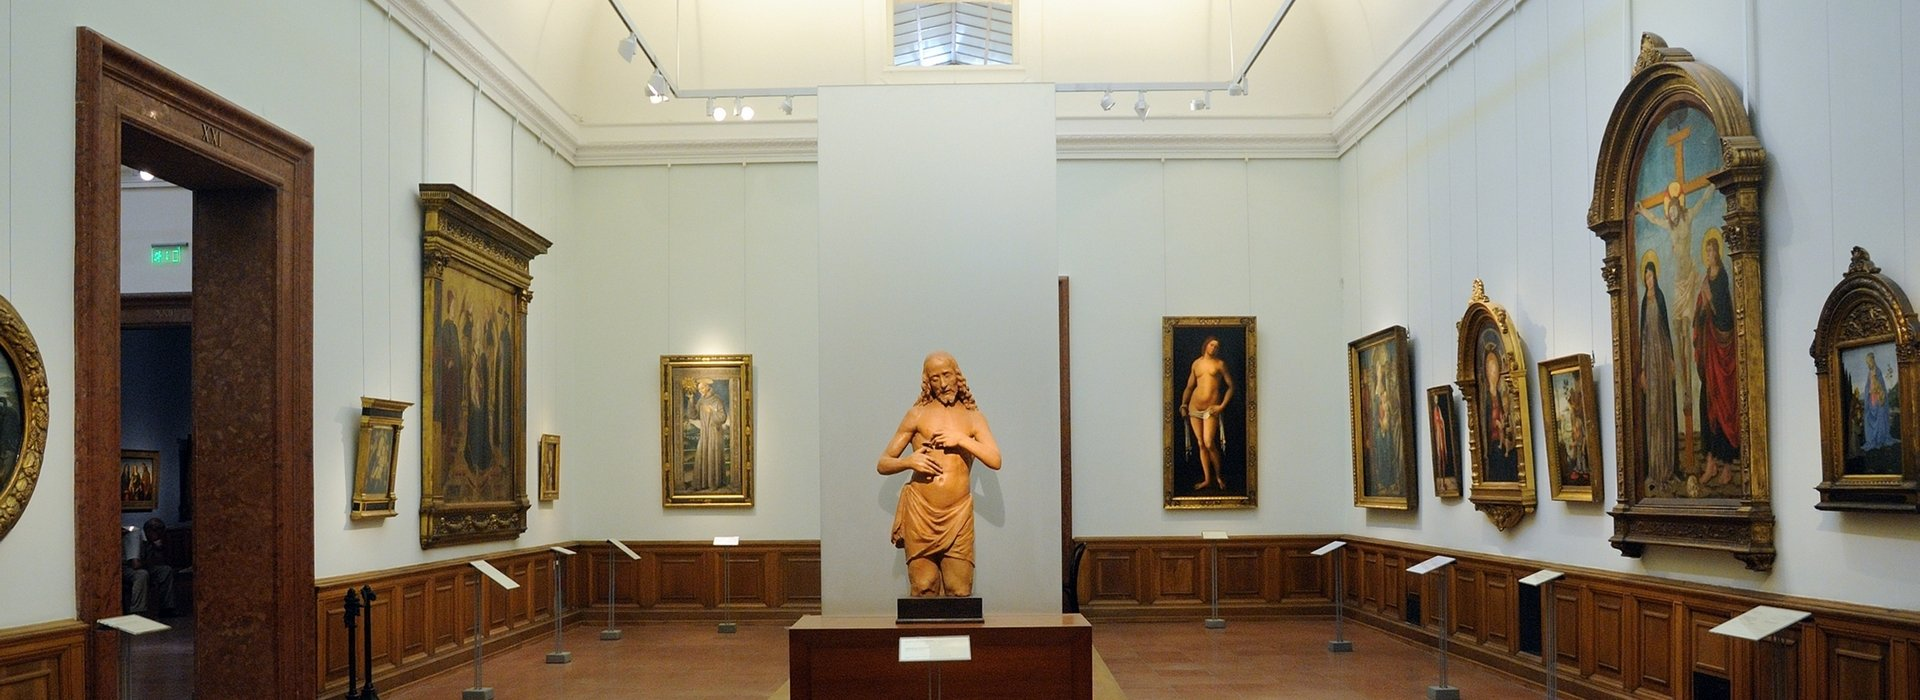 Exhibiton halls & galleries